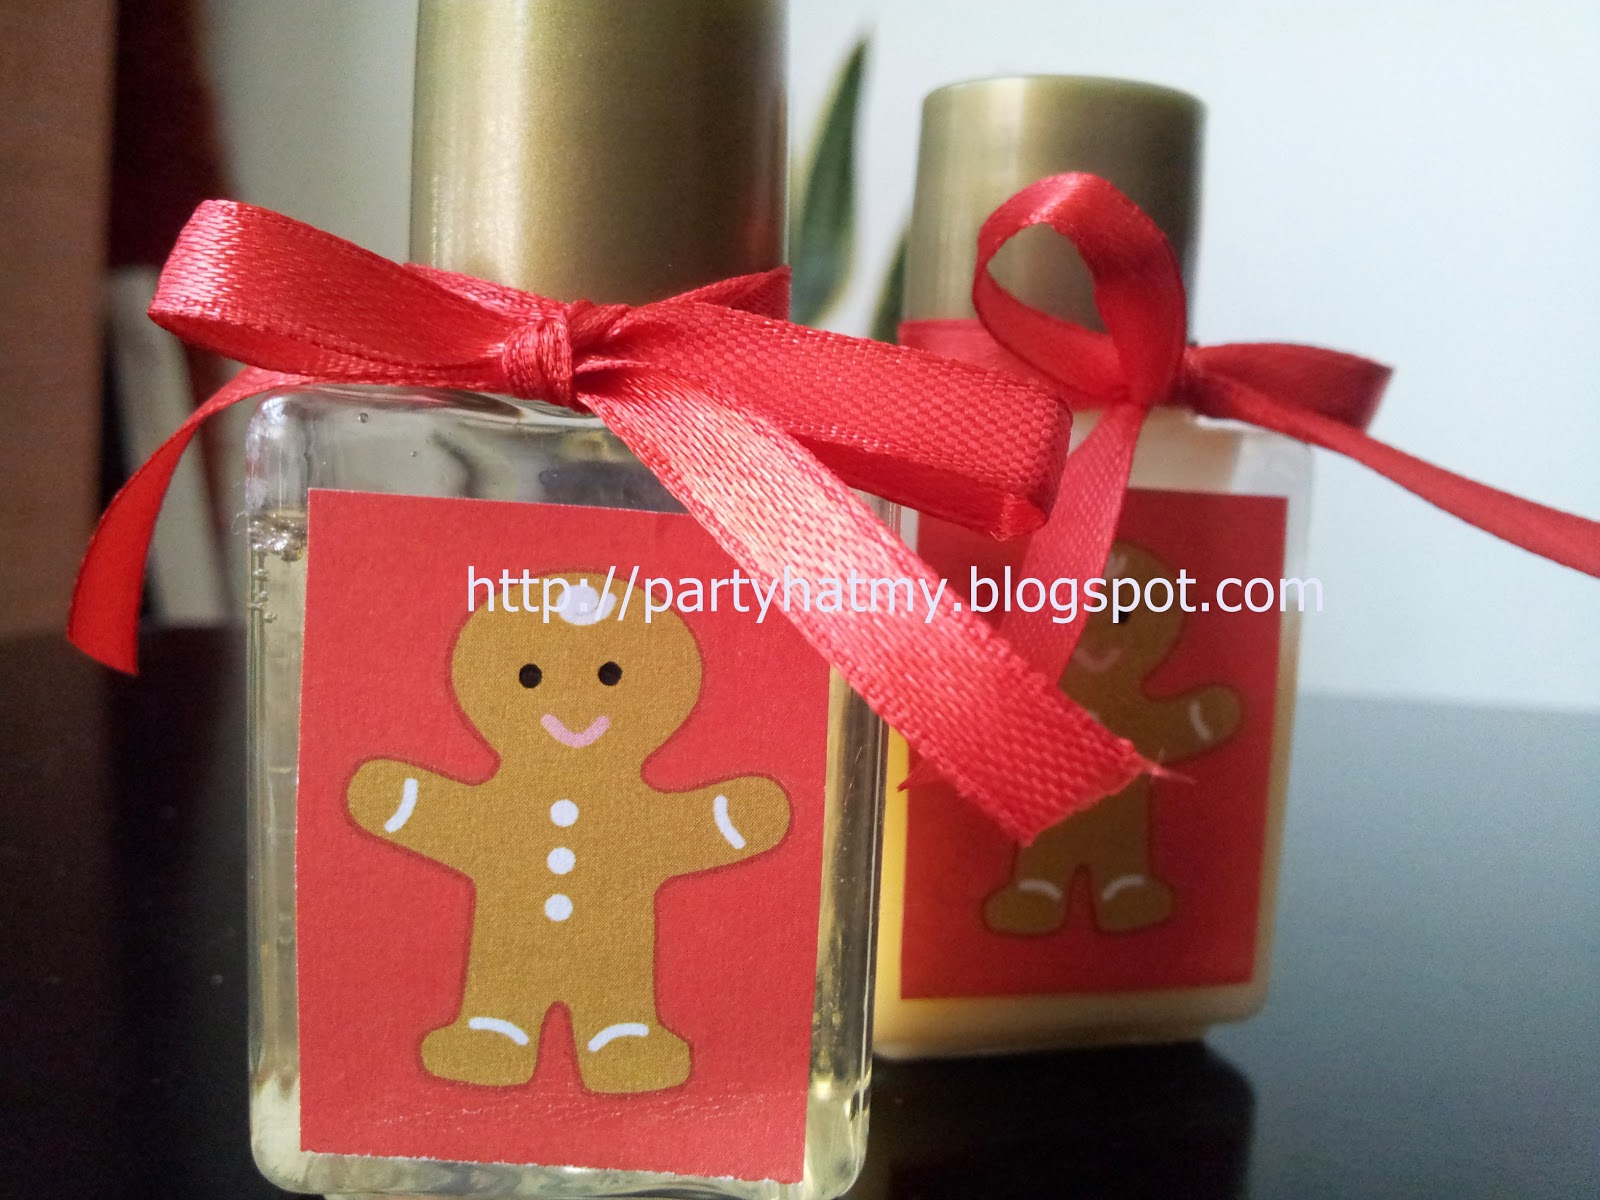 party hat gift idea christmas party door gift